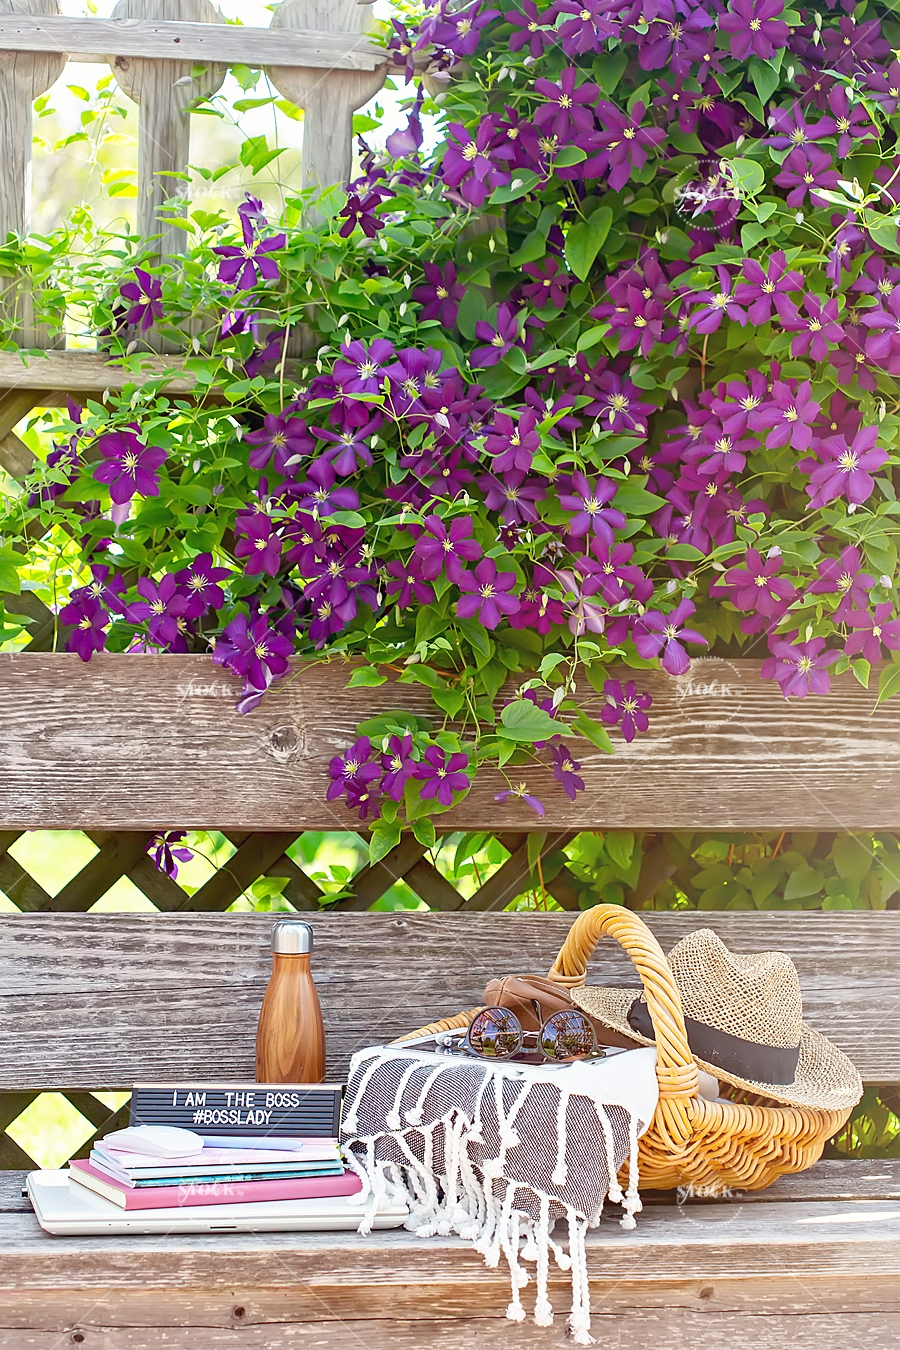 purple flowers and work materials on bench at Ornamental Gardens in Ottawa